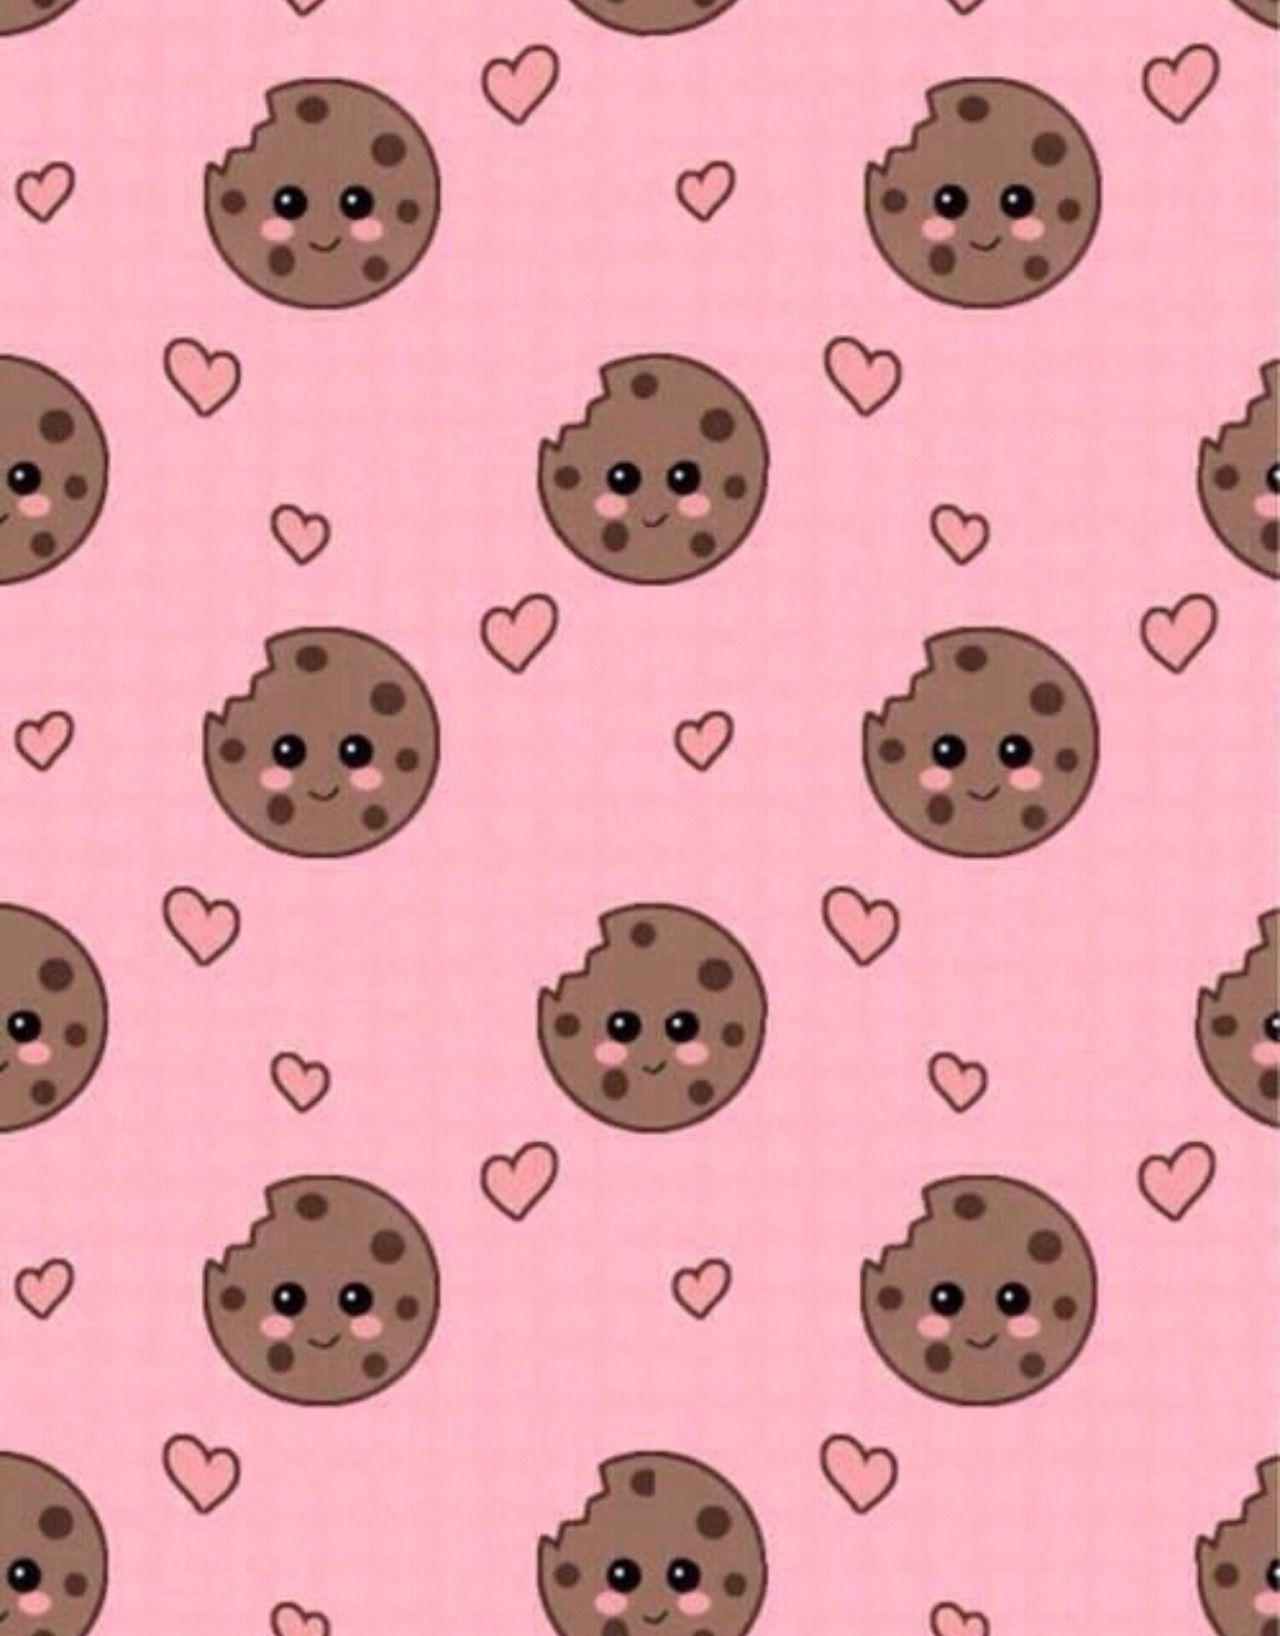 Cute Cartoon Cookie Wallpapers Top Free Cute Cartoon